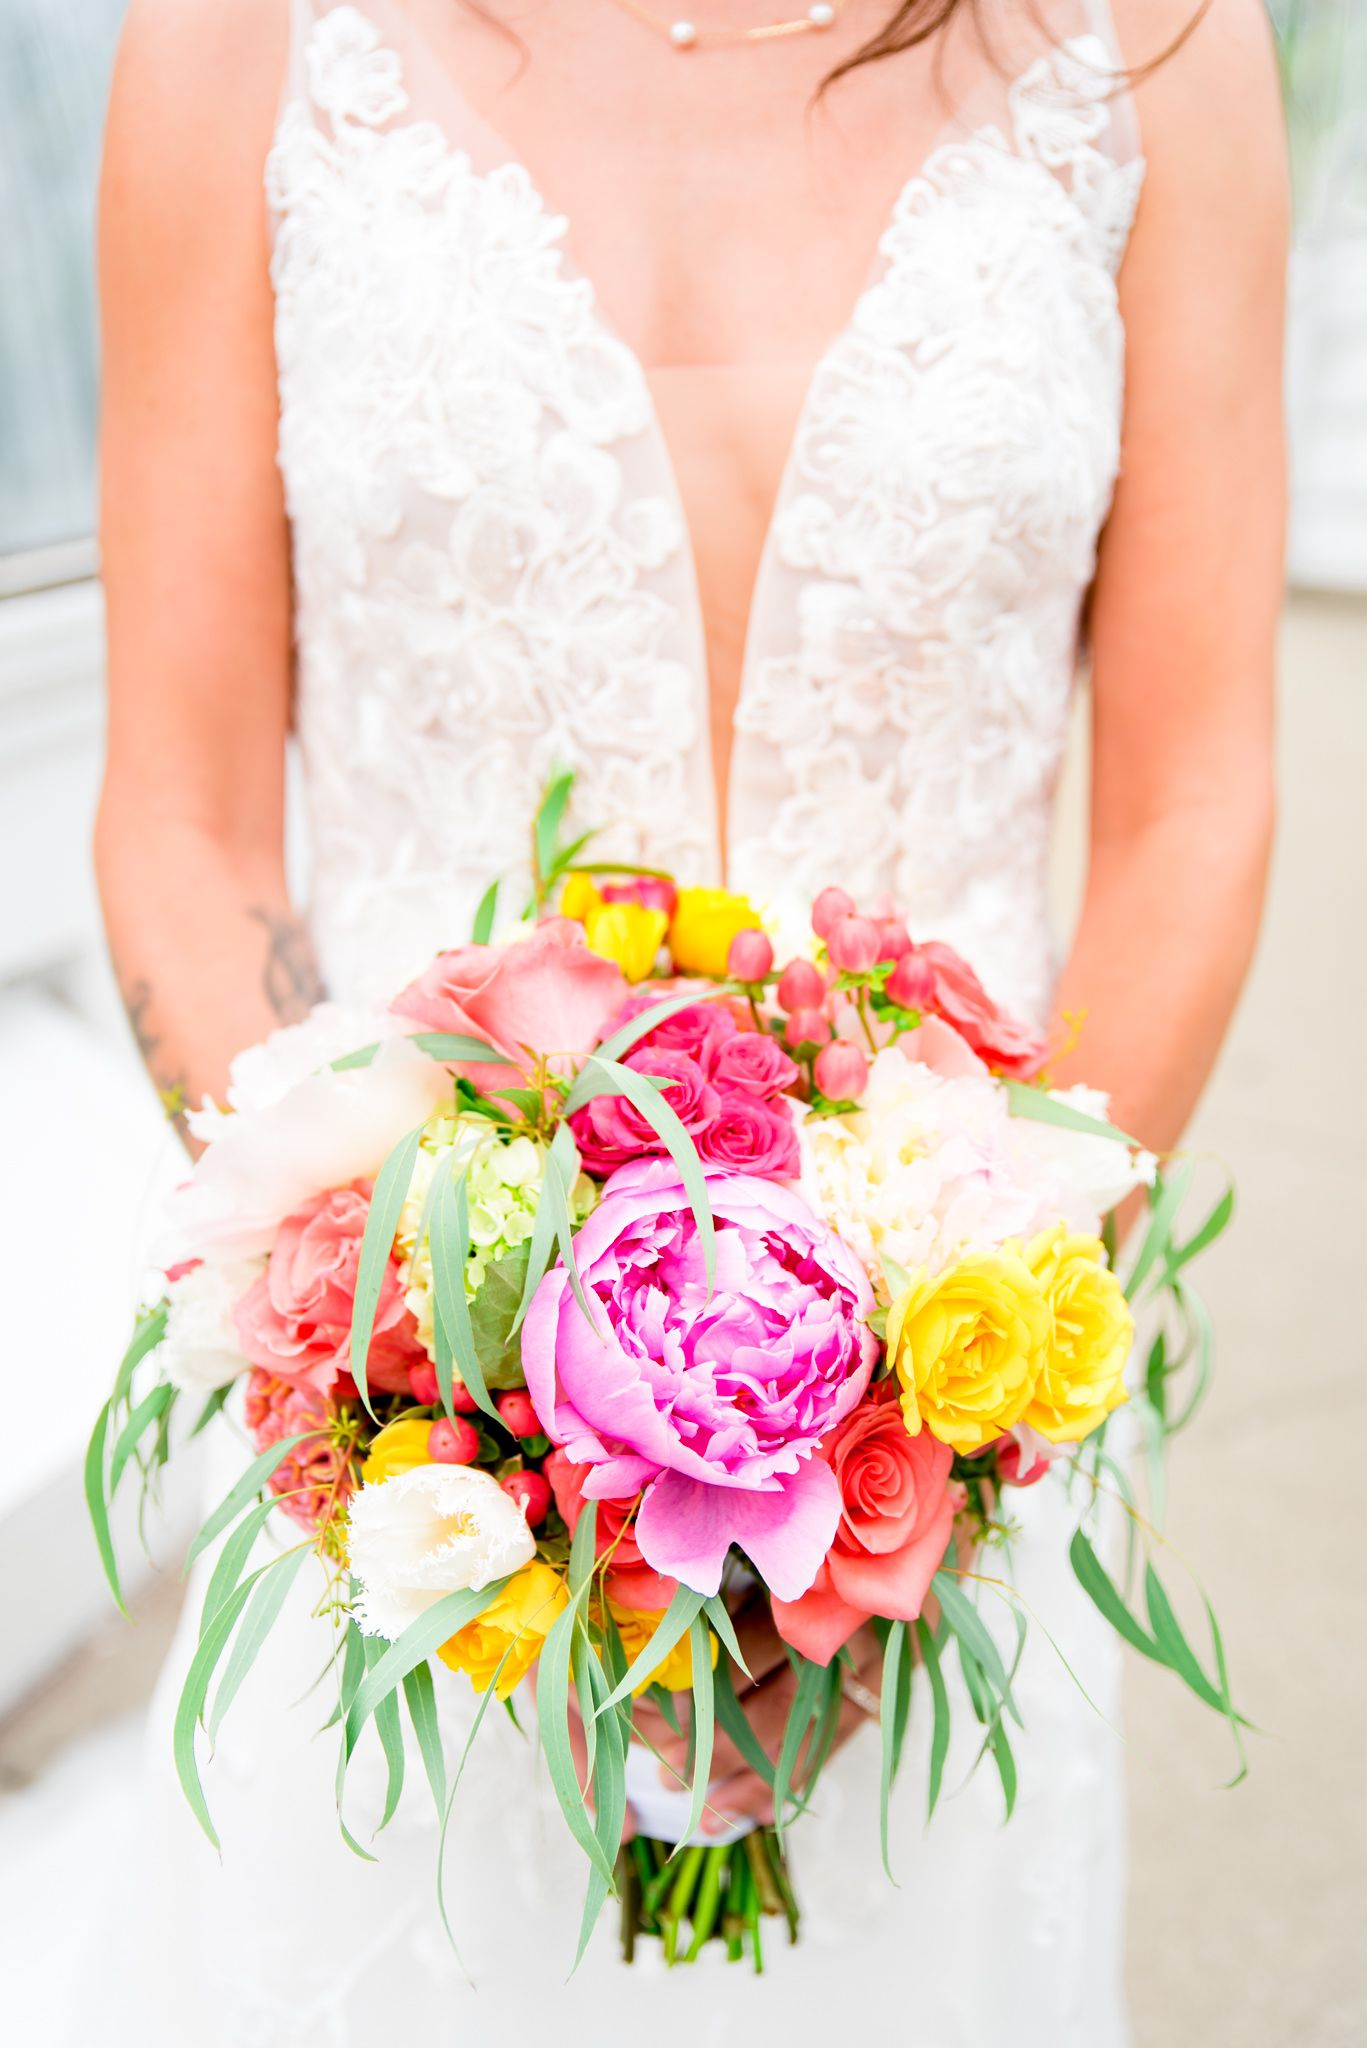 bride in Kelly Faetanini Serafina gown holding a pink, yellow, and green wedding bouquet at Krohn Conservatory